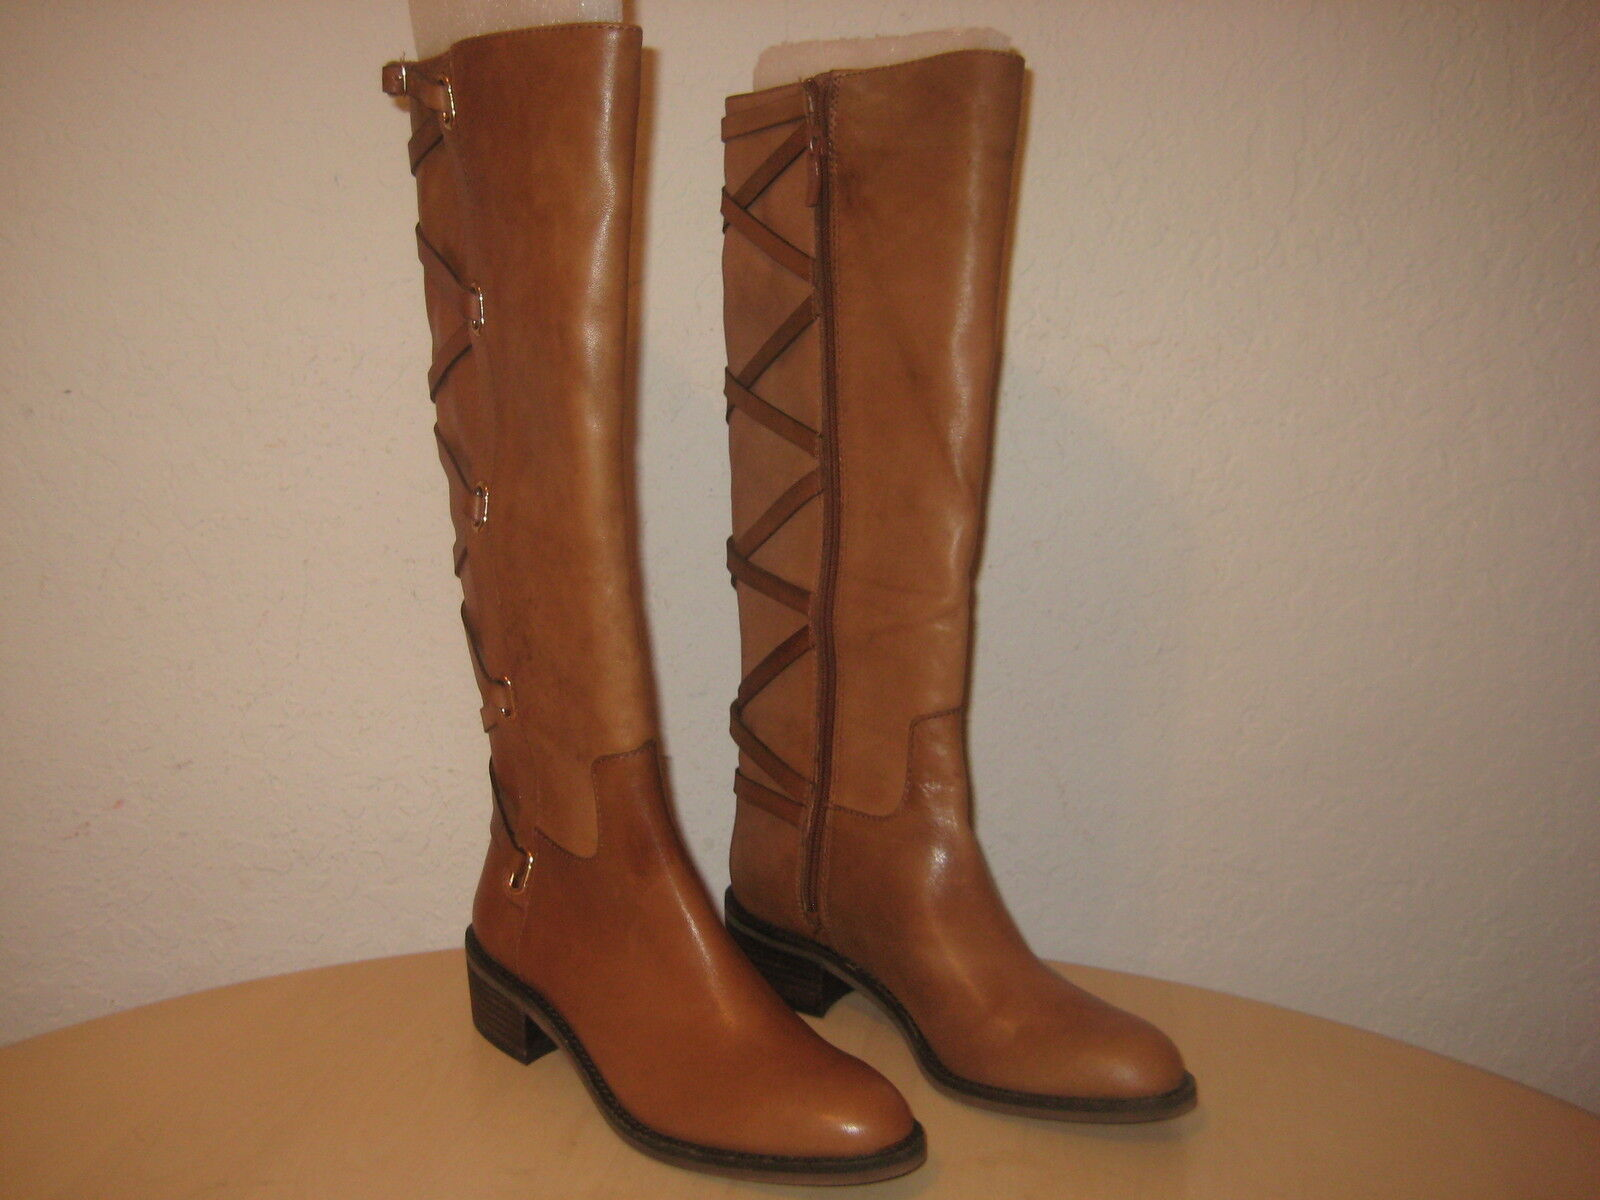 BCBG BCBGeneration shoes Size 5.5 M Womens New Janiss Light Brown Leather Boots